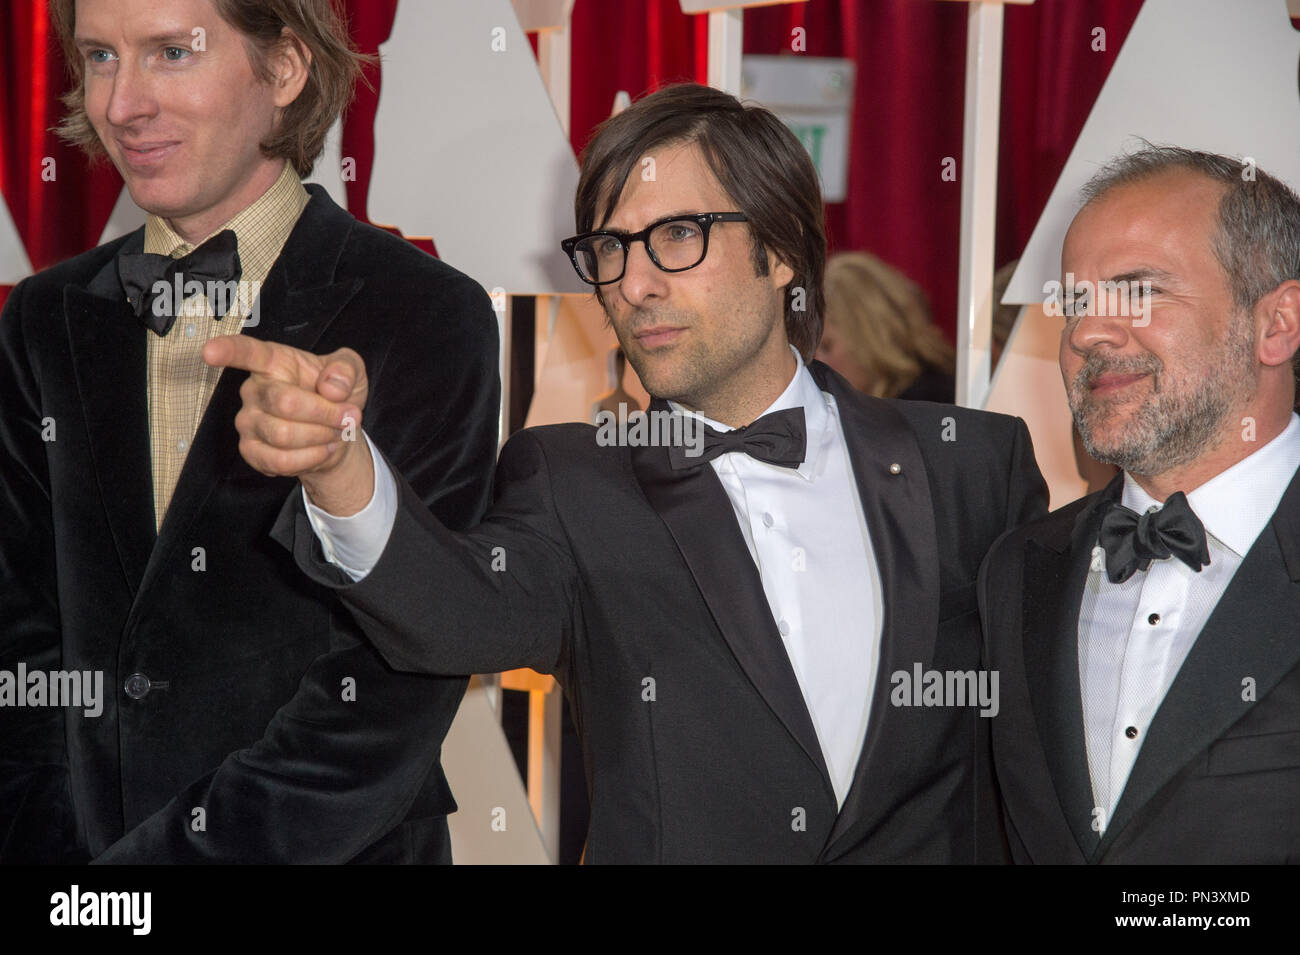 Page 3 Wes Anderson High Resolution Stock Photography And Images Alamy